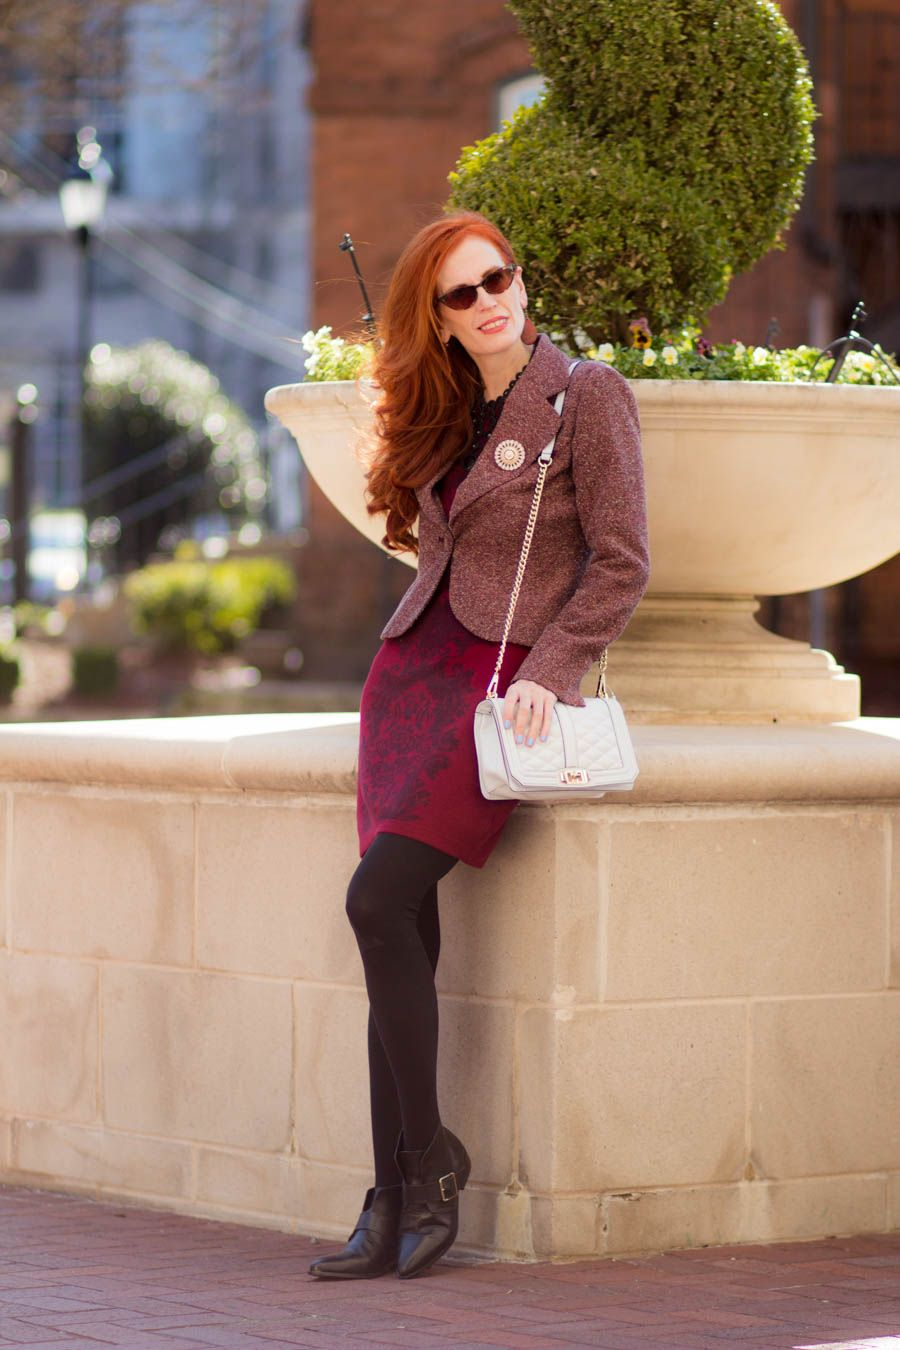 My Refined Style #linkup-#6 -Sweater Dressing with Rich Colors - Elegantly Dressed & Stylish - Over 40 Fashion Blog